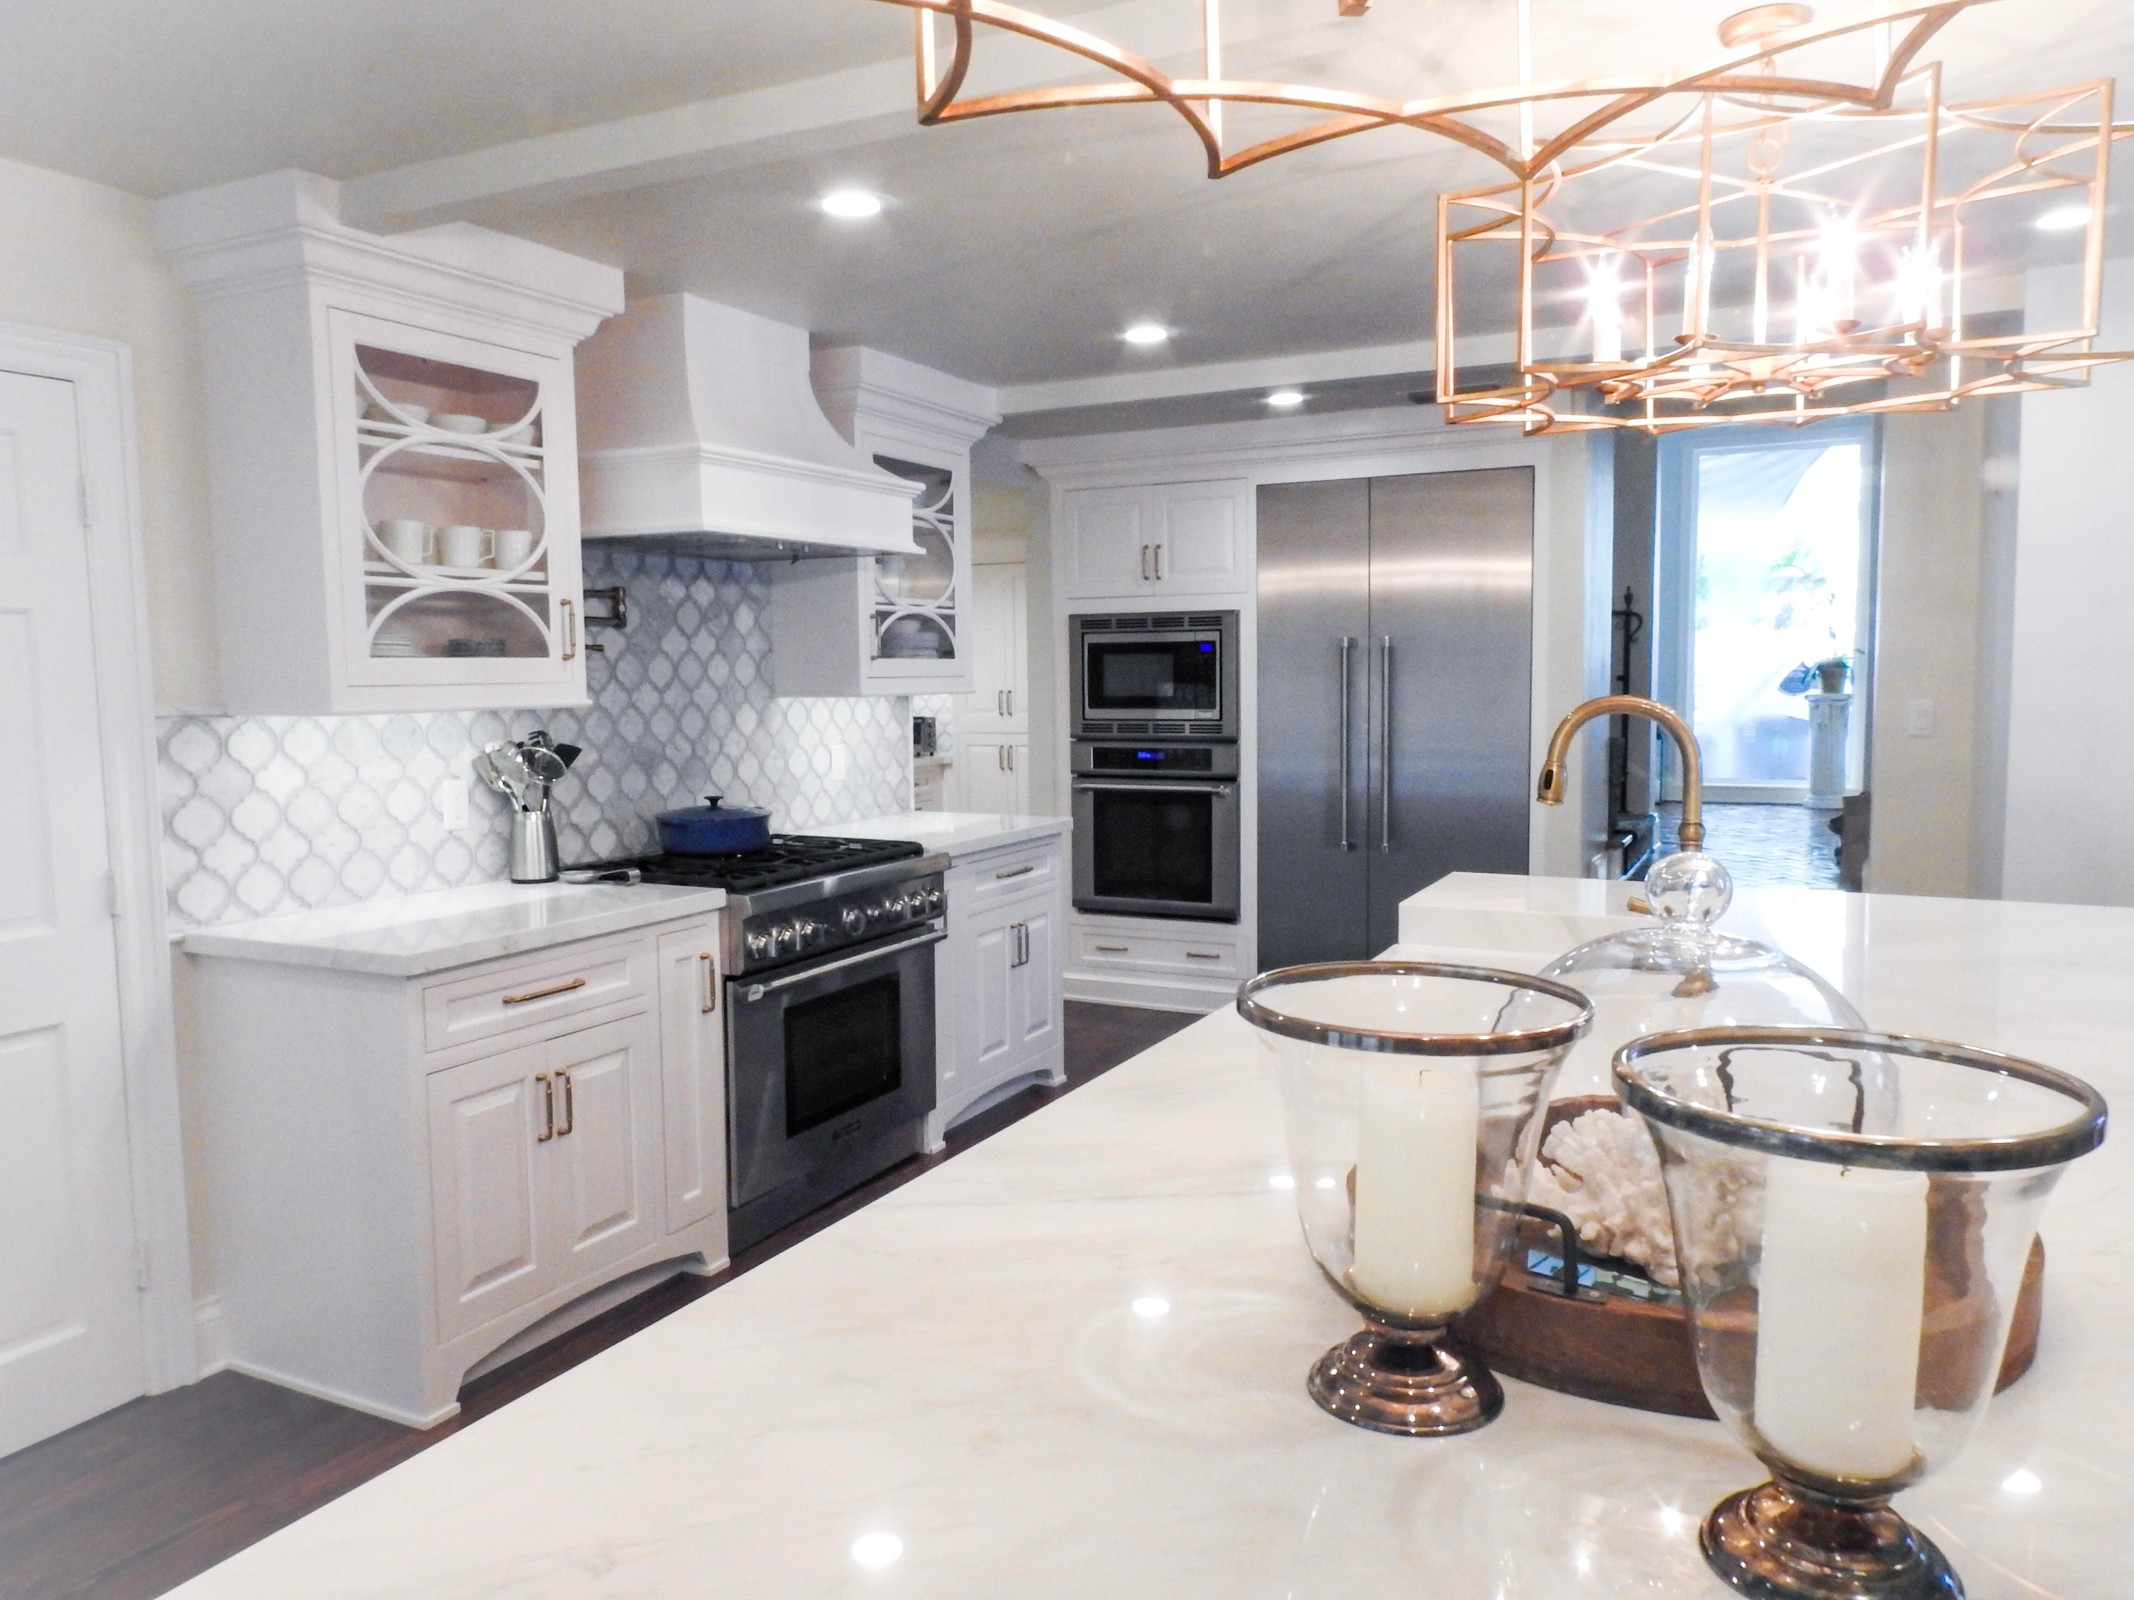 Elegant kitchen, white cabinets by Amoroso Cabinets, center island